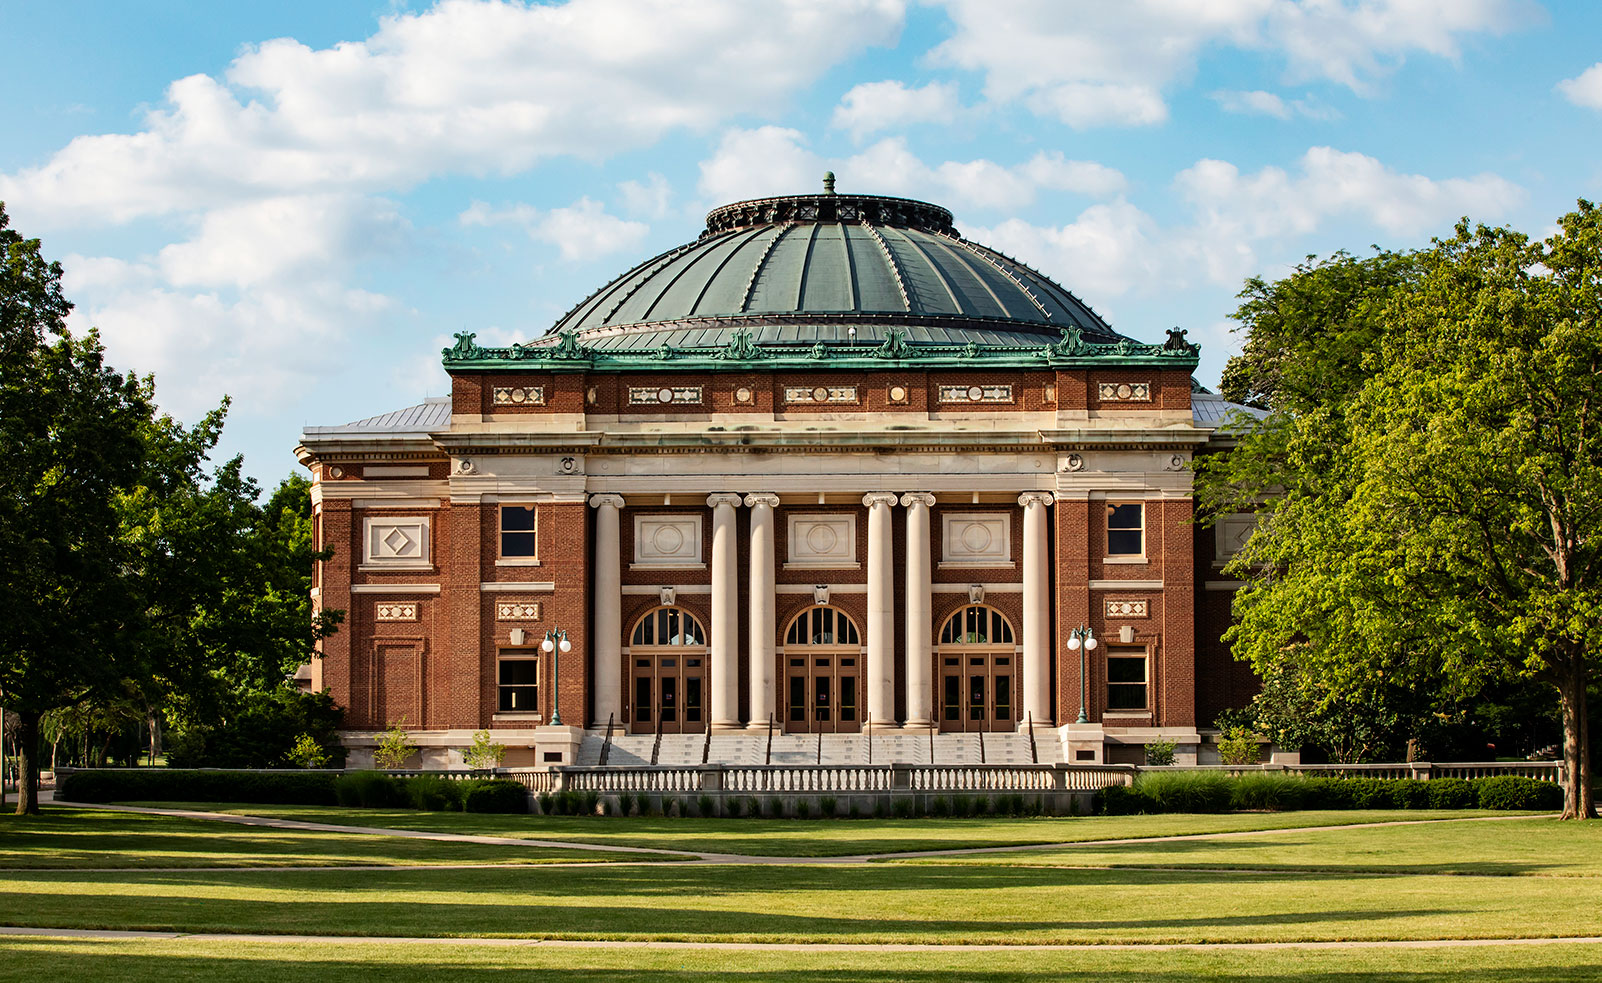 the front of Foellinger Auditorium on a bright, summer day